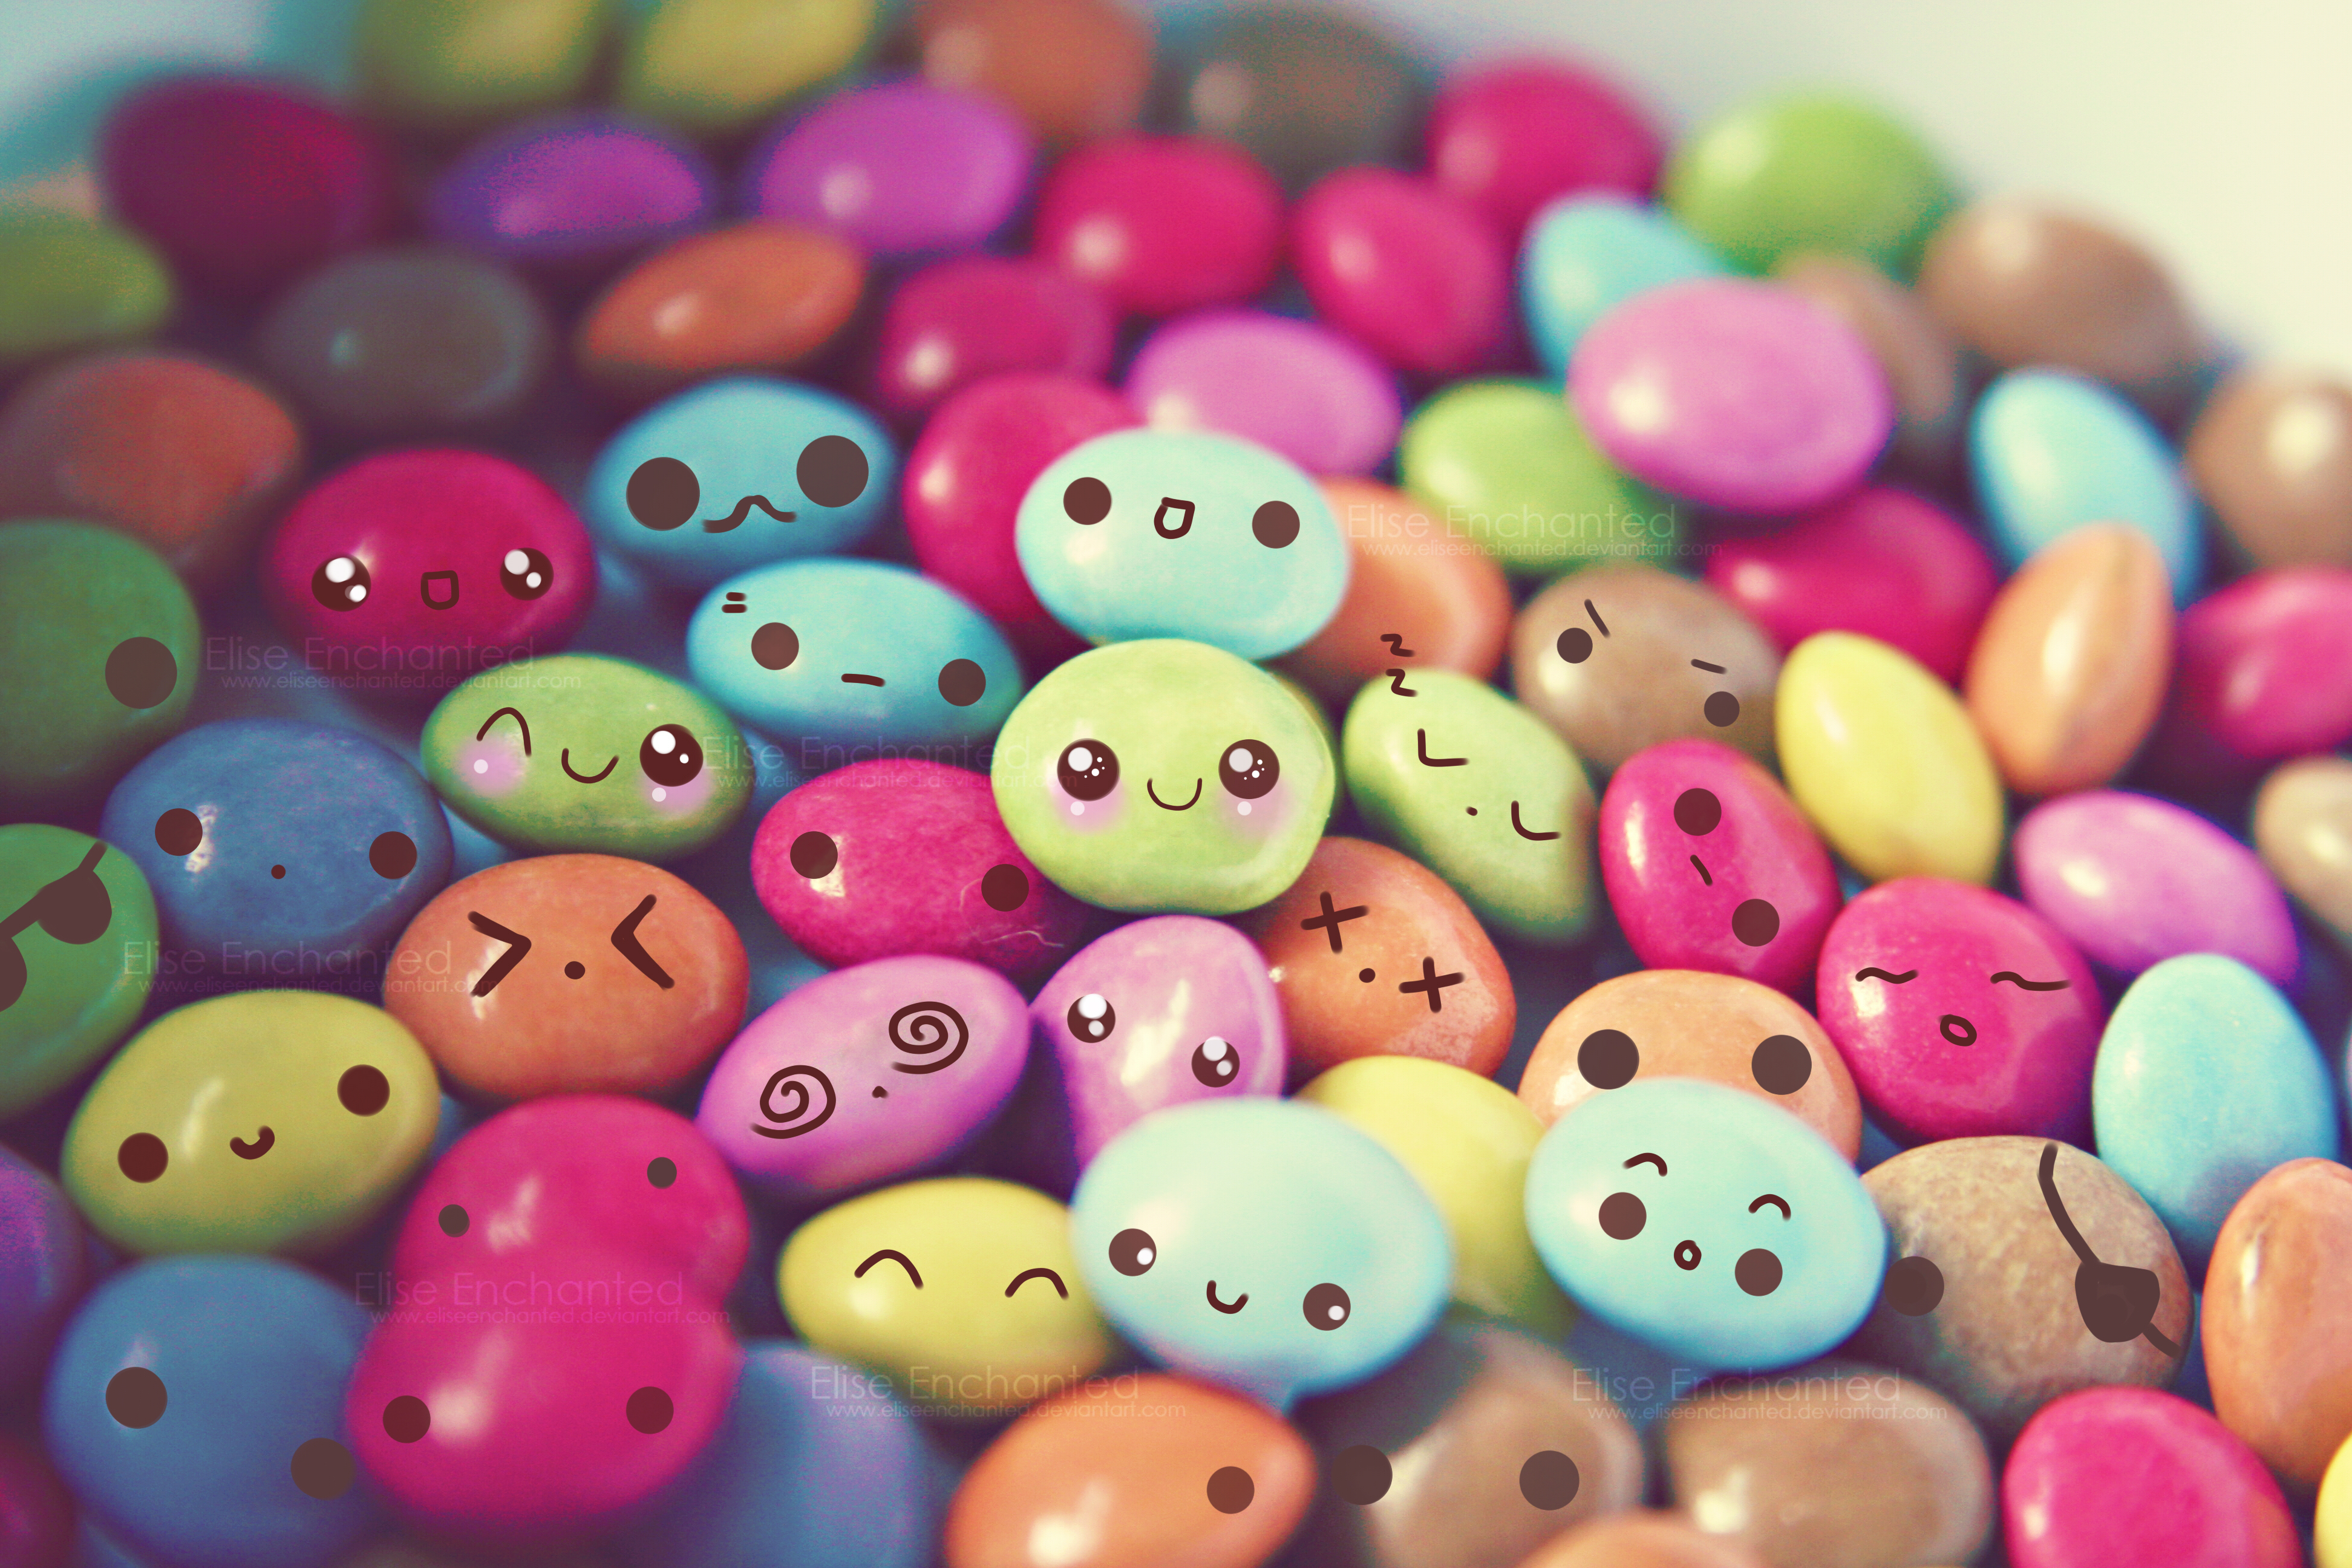 //fc03.deviantart.net/fs71/f/2011/092/3/8/cute_faces_wallpaper_by_eliseenchanted-d3d1amg.jpg